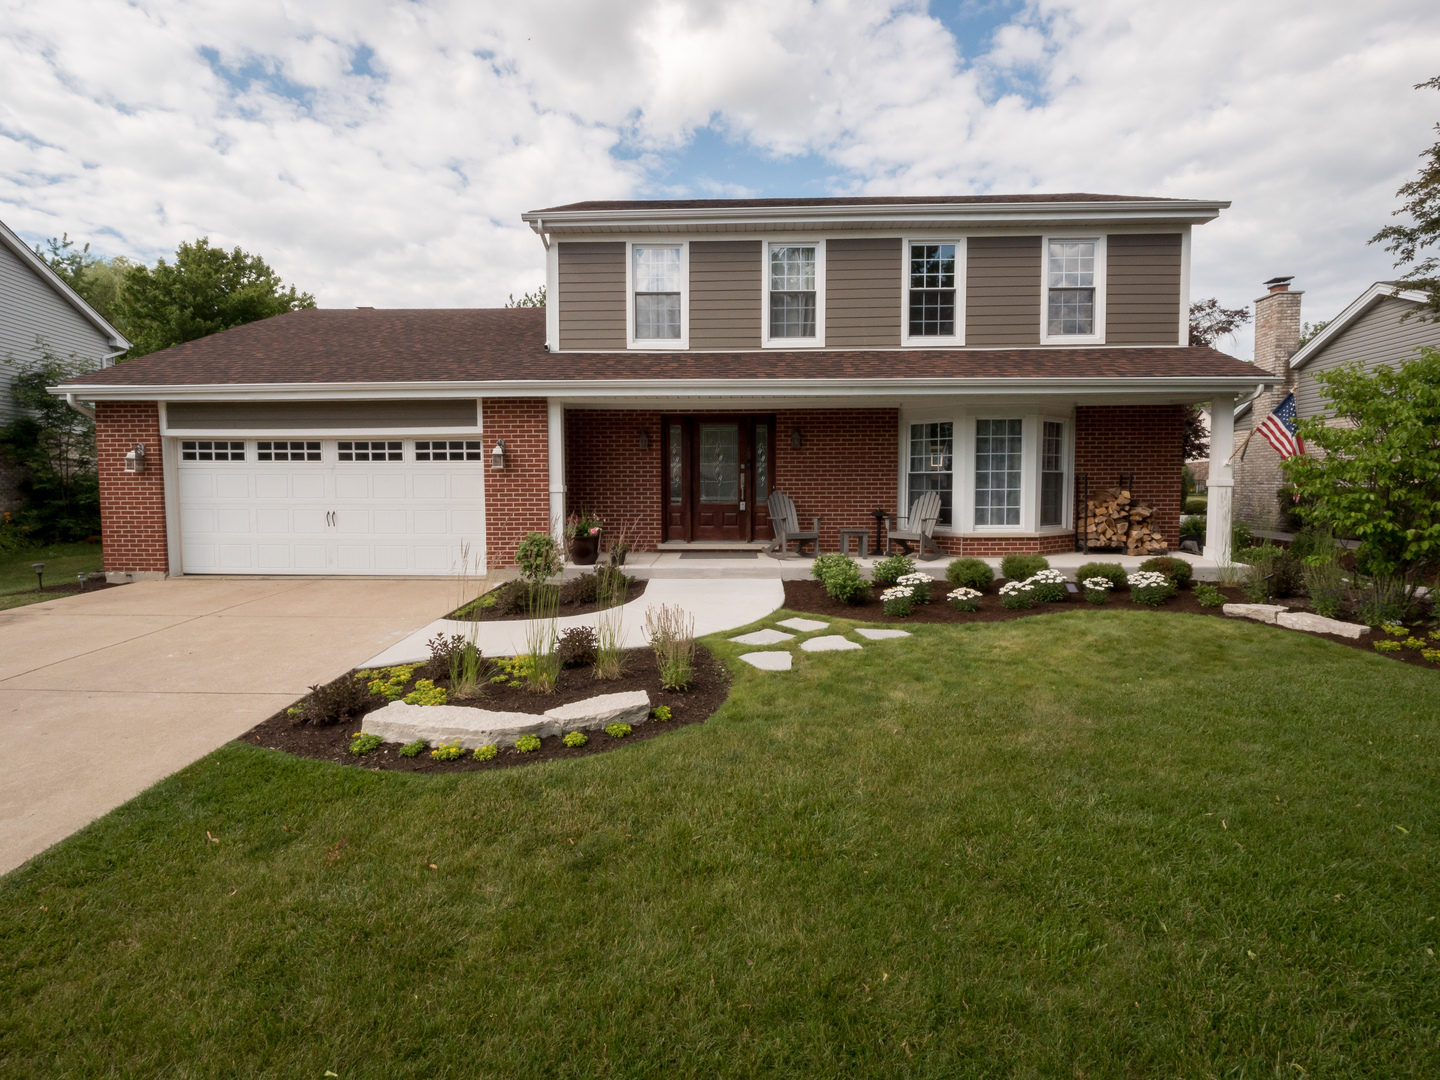 Photo for 20W350 York Lane, Downers Grove, IL 60516 (MLS # 10904115)